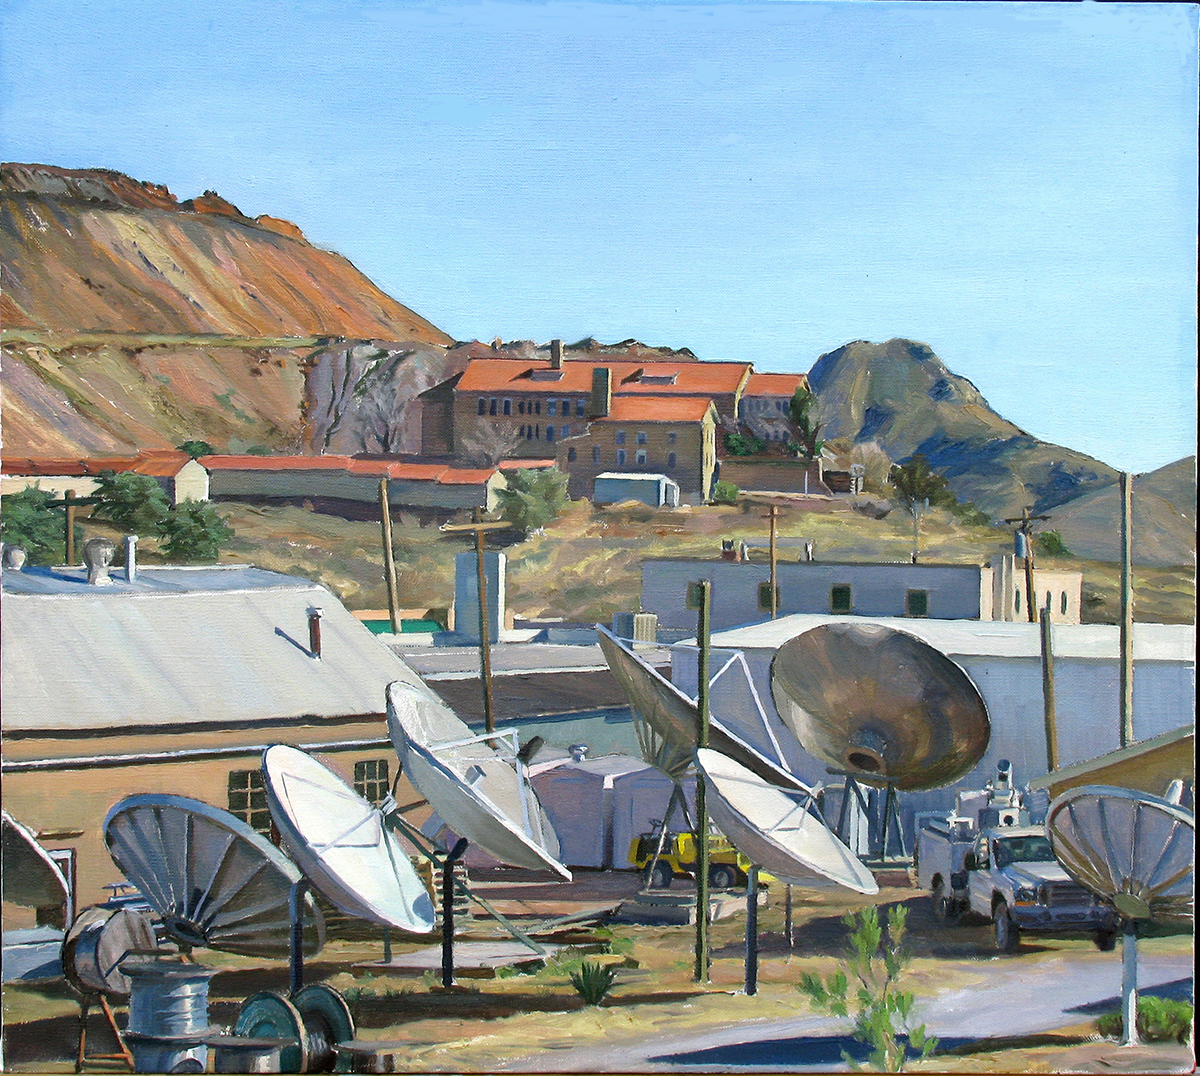 "ARIZONA DISCS oil on linen 18 x 20"" 2009"